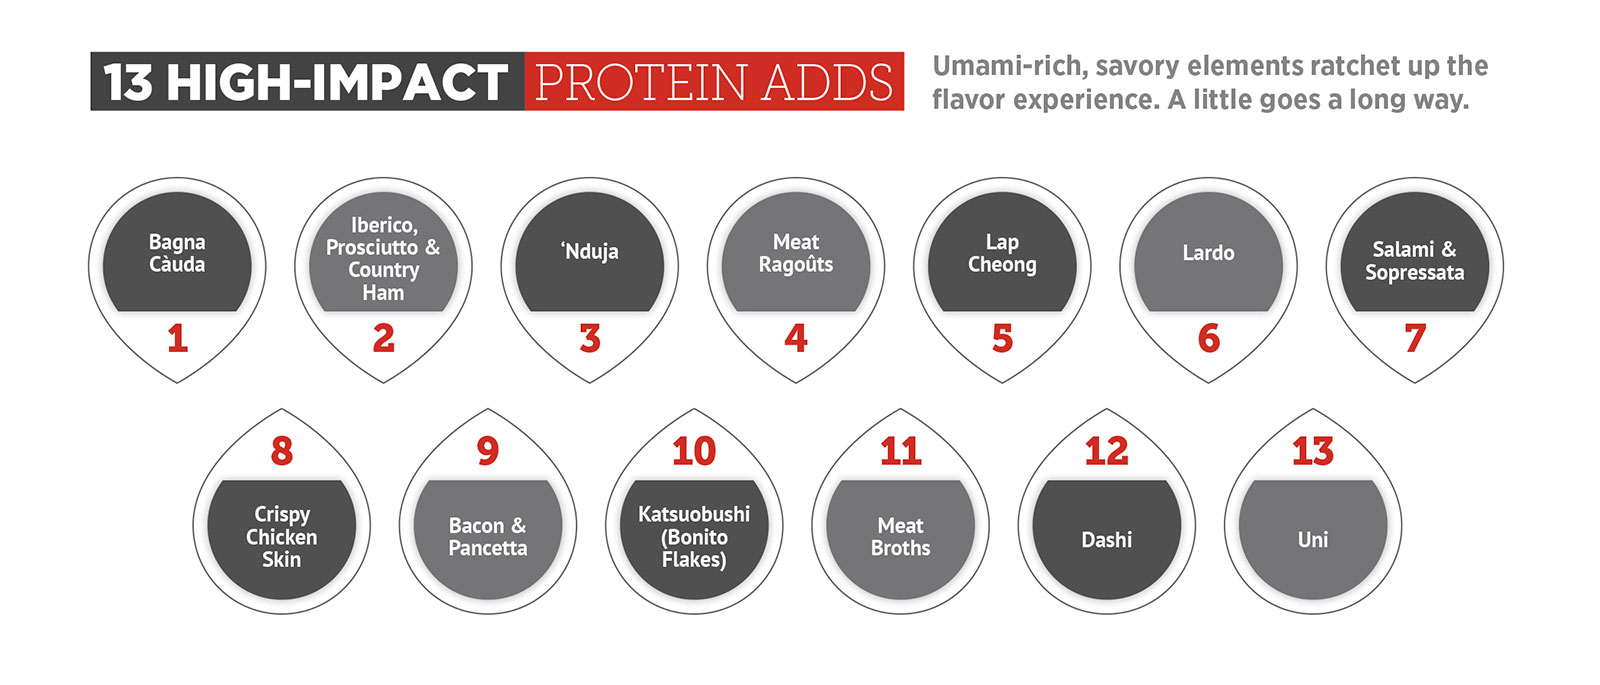 Veg-centric protein adds infographic